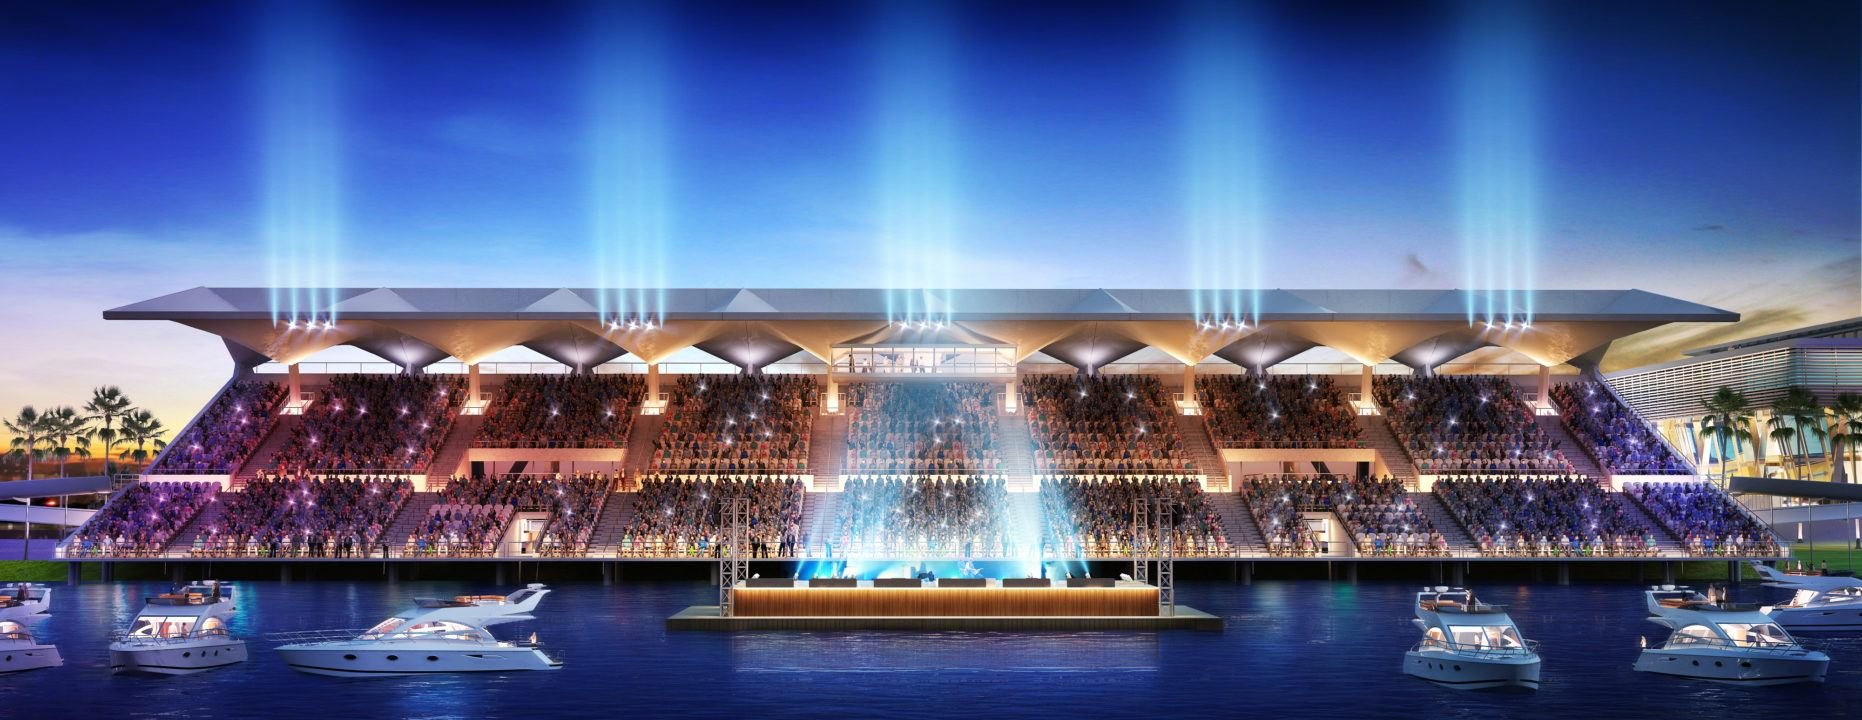 2019 US Open Water Championships to be Held at Miami Marine Stadium